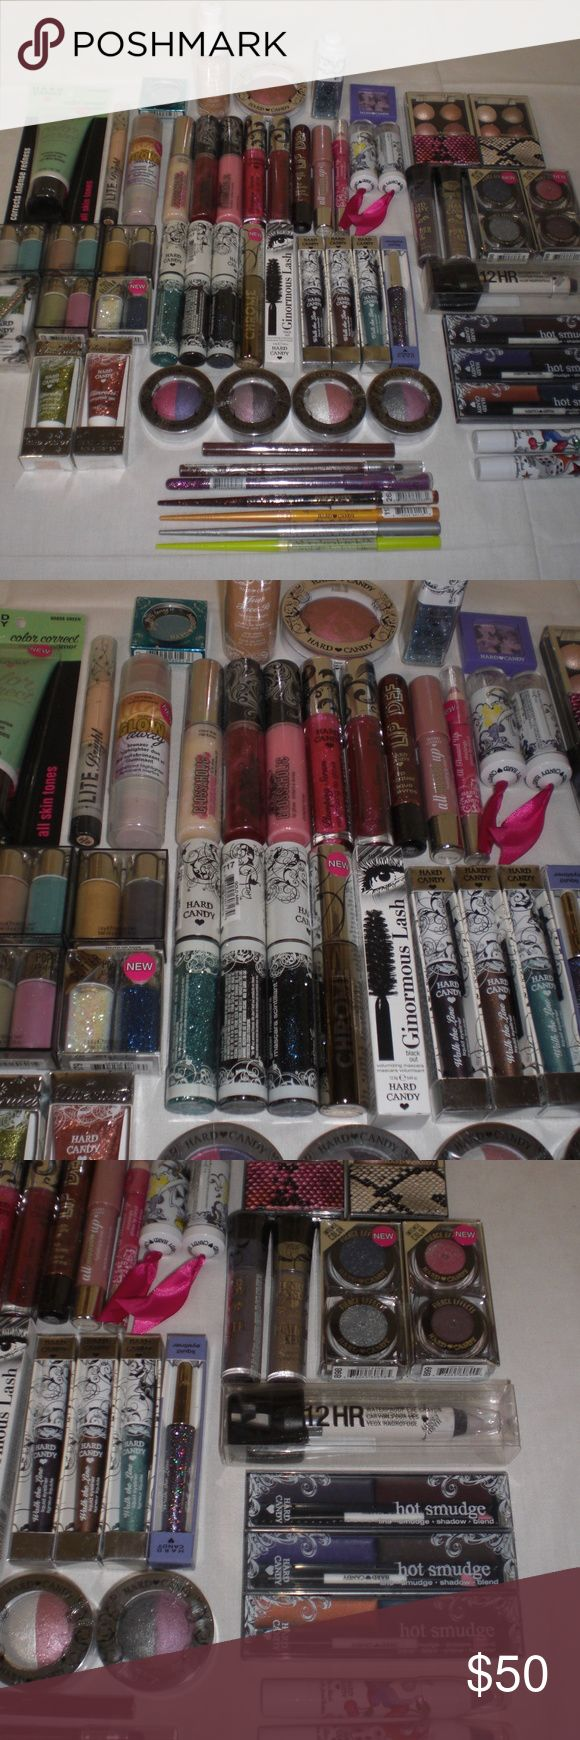 Hard Candy Makeup Cosmetics Mixed Lot of 50 Pieces Hard Candy Cosmetics Lot of 50 - No Duplicates! Wholesale lot of 50 mixed HARD CANDY cosmetics including a combination of lipstick, lip gloss, eyeshadow, eye liner, eye glitter, mascara, foundation, blush, concealers, loose glitter, temporary body tattoos and MORE. This is top notch, high quality merchandise. There is huge profit in this lot. Model photos to show the different types of item that will be included. Mixes will vary and…